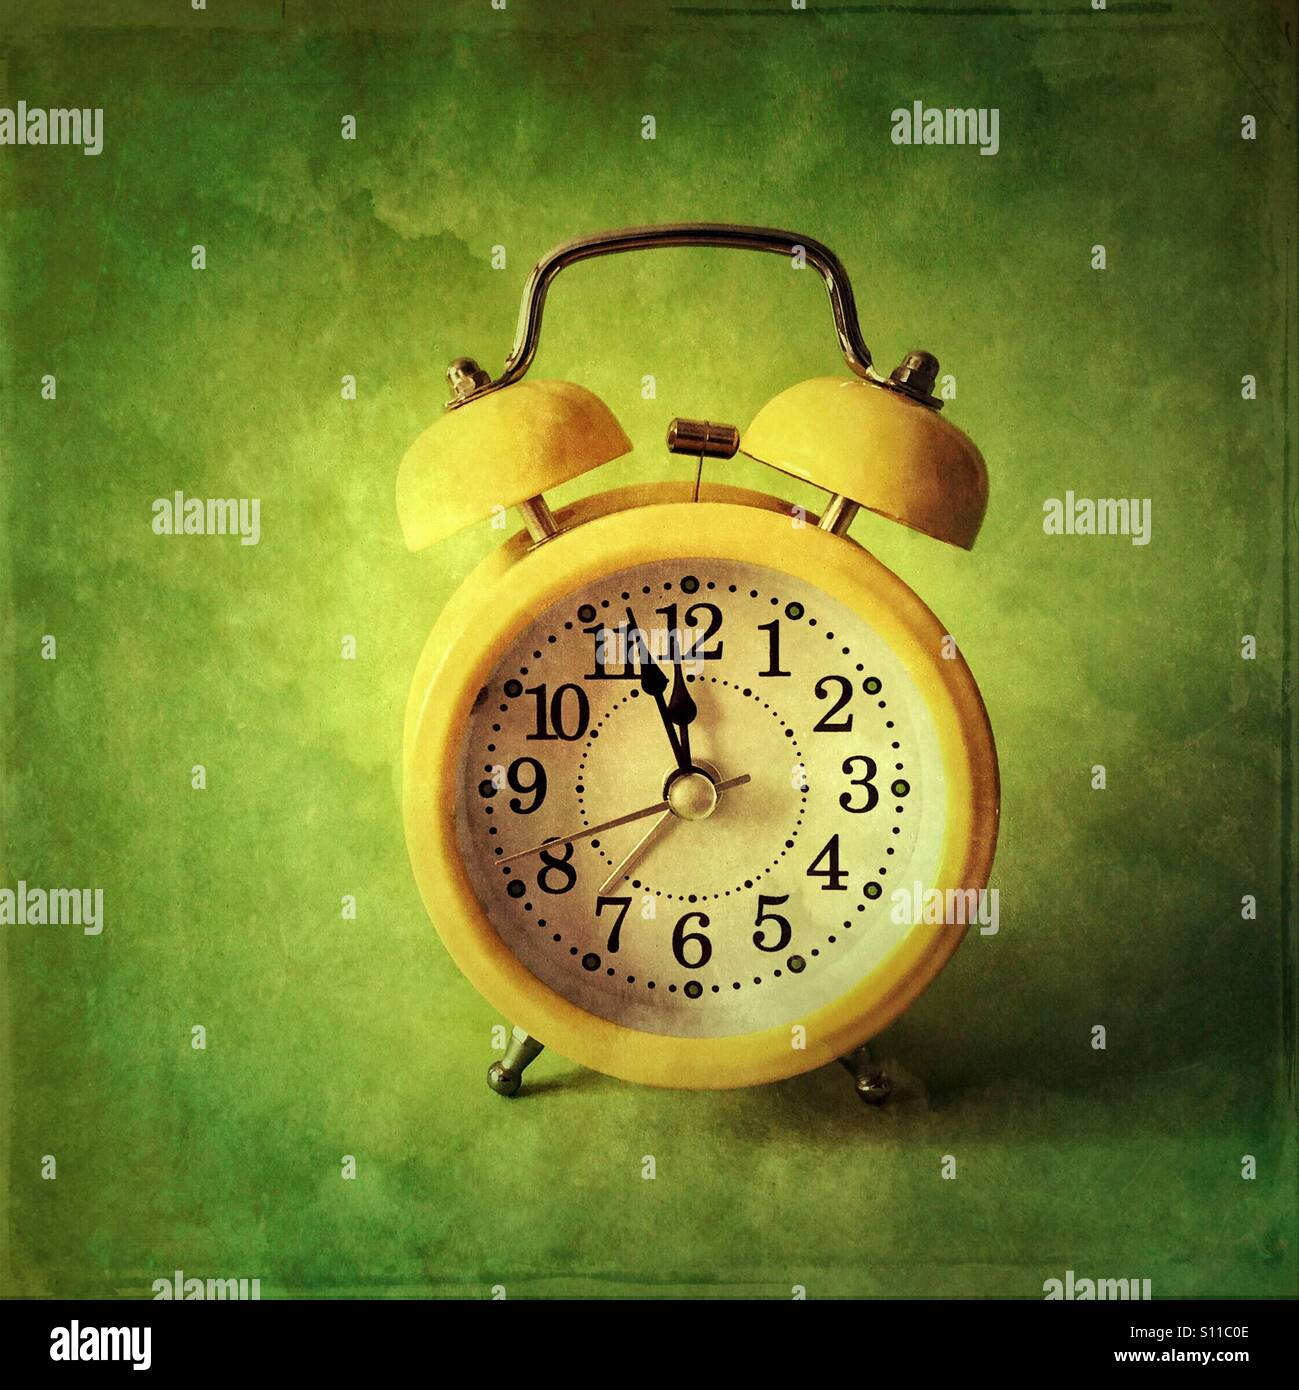 Retro alarm clock- three minutes to midnight - Stock Image